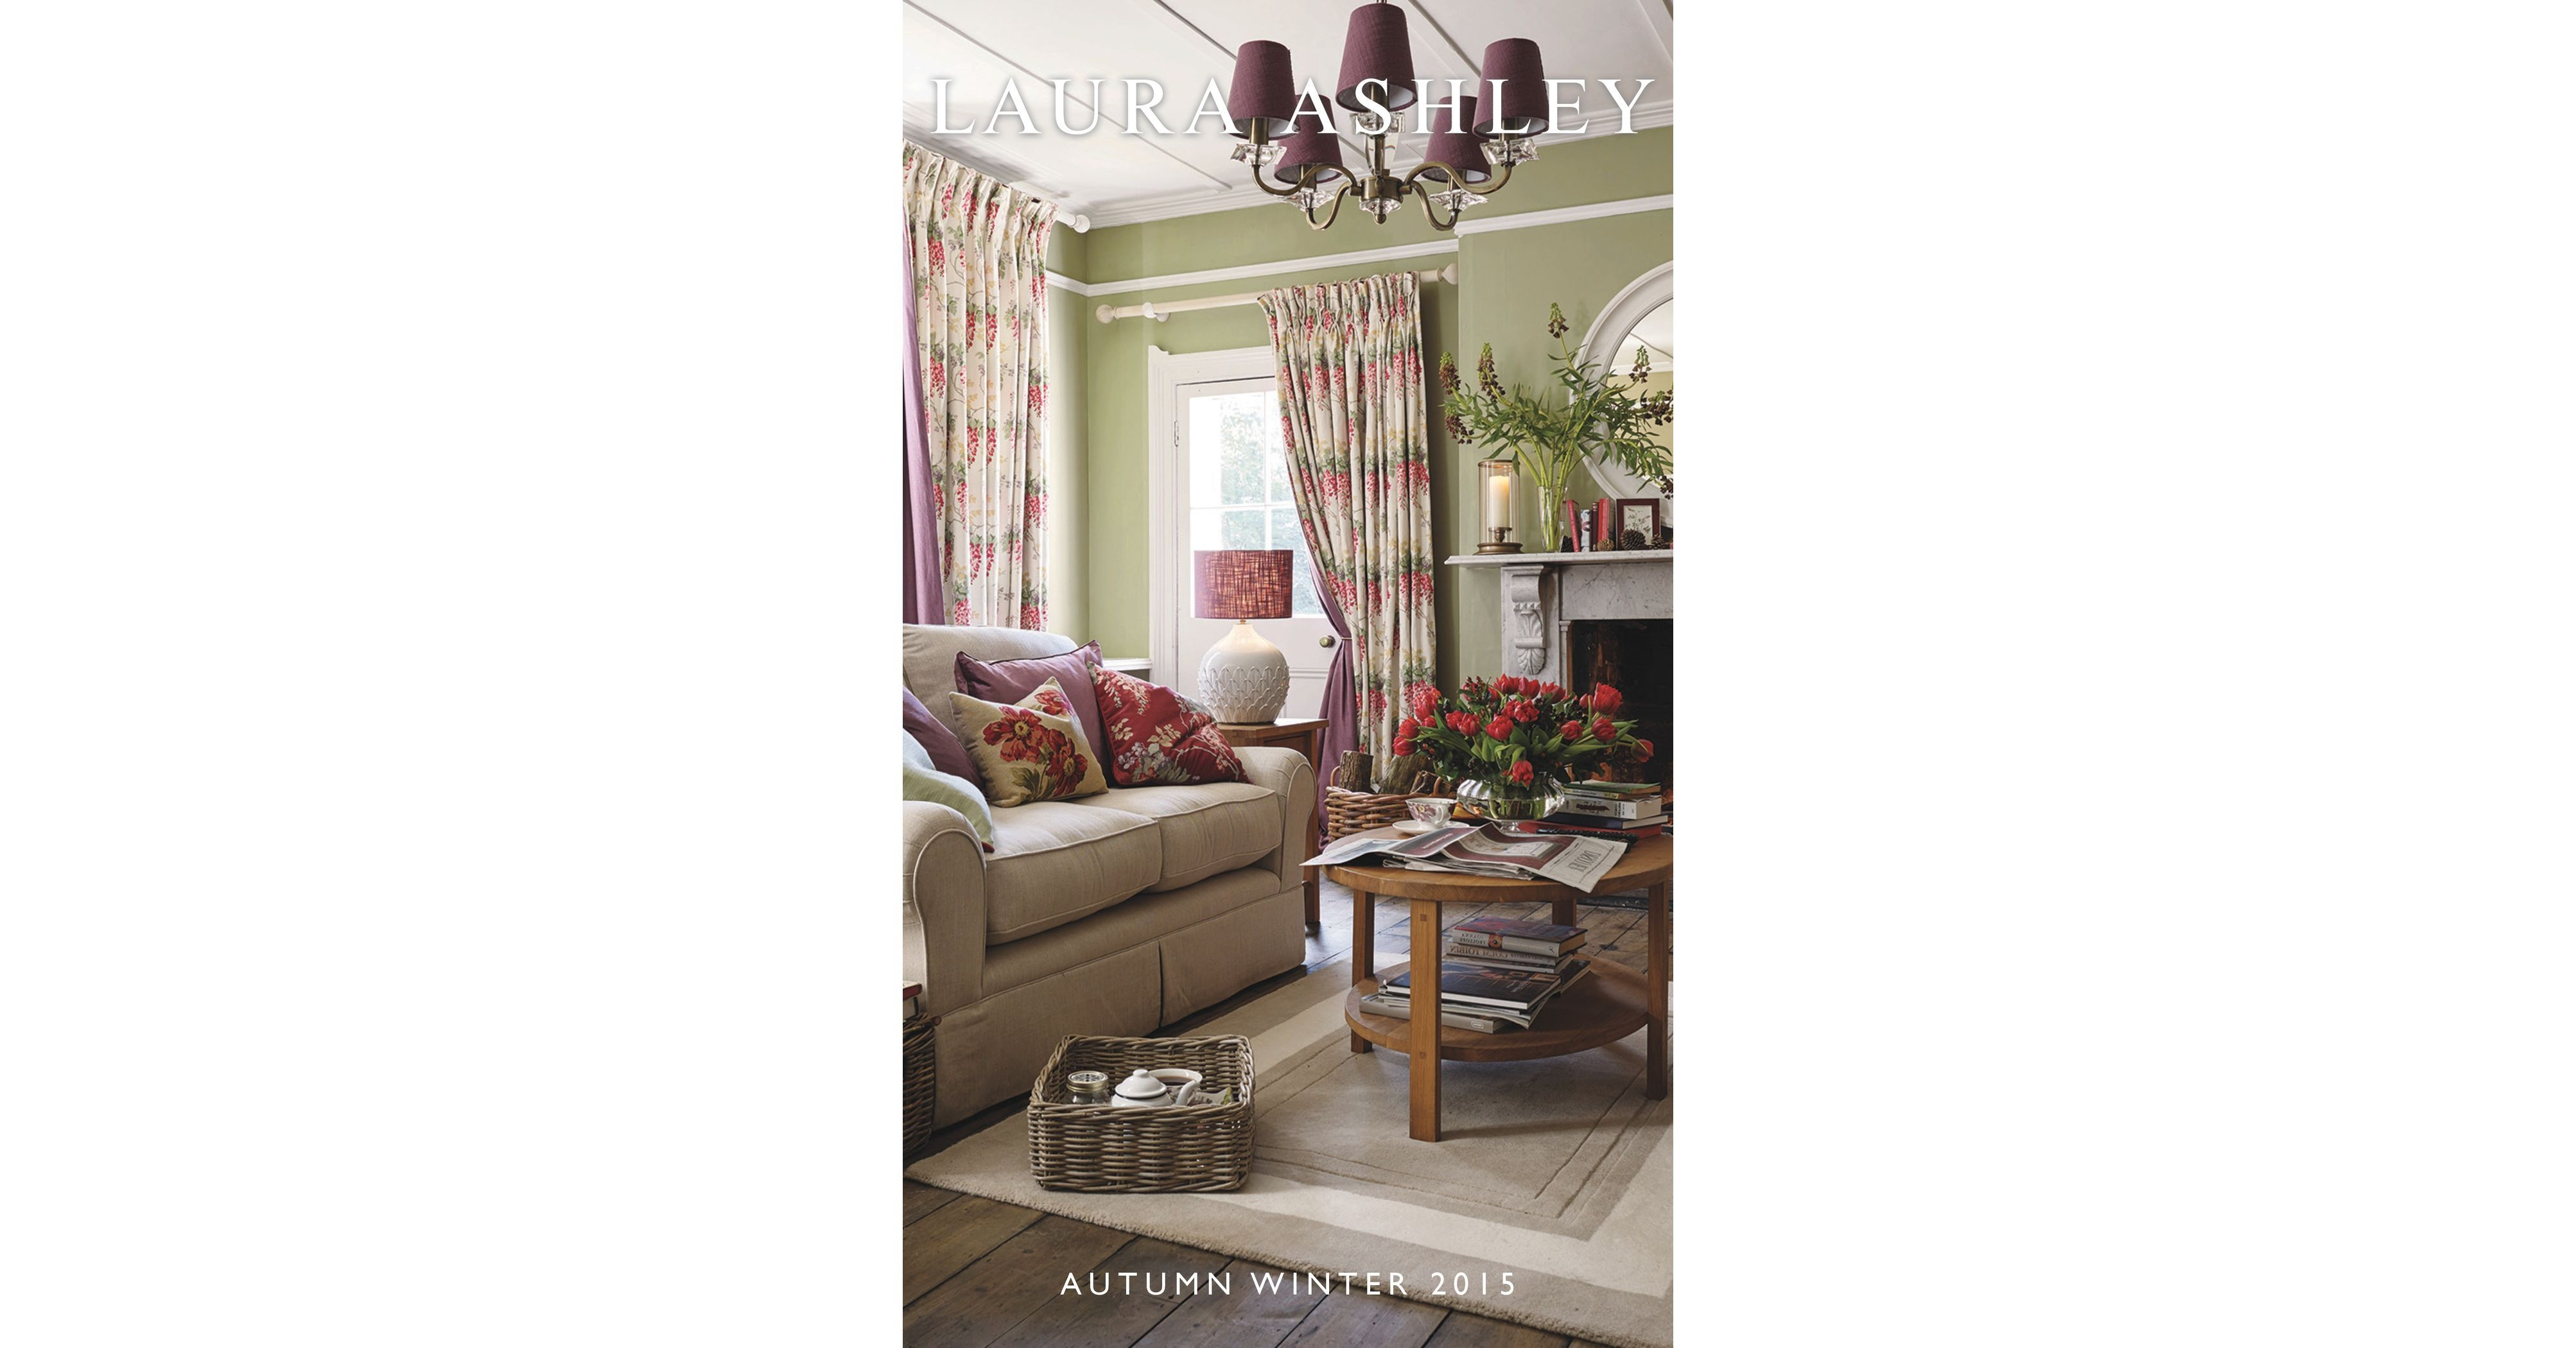 Laura Ashley AW15 USA